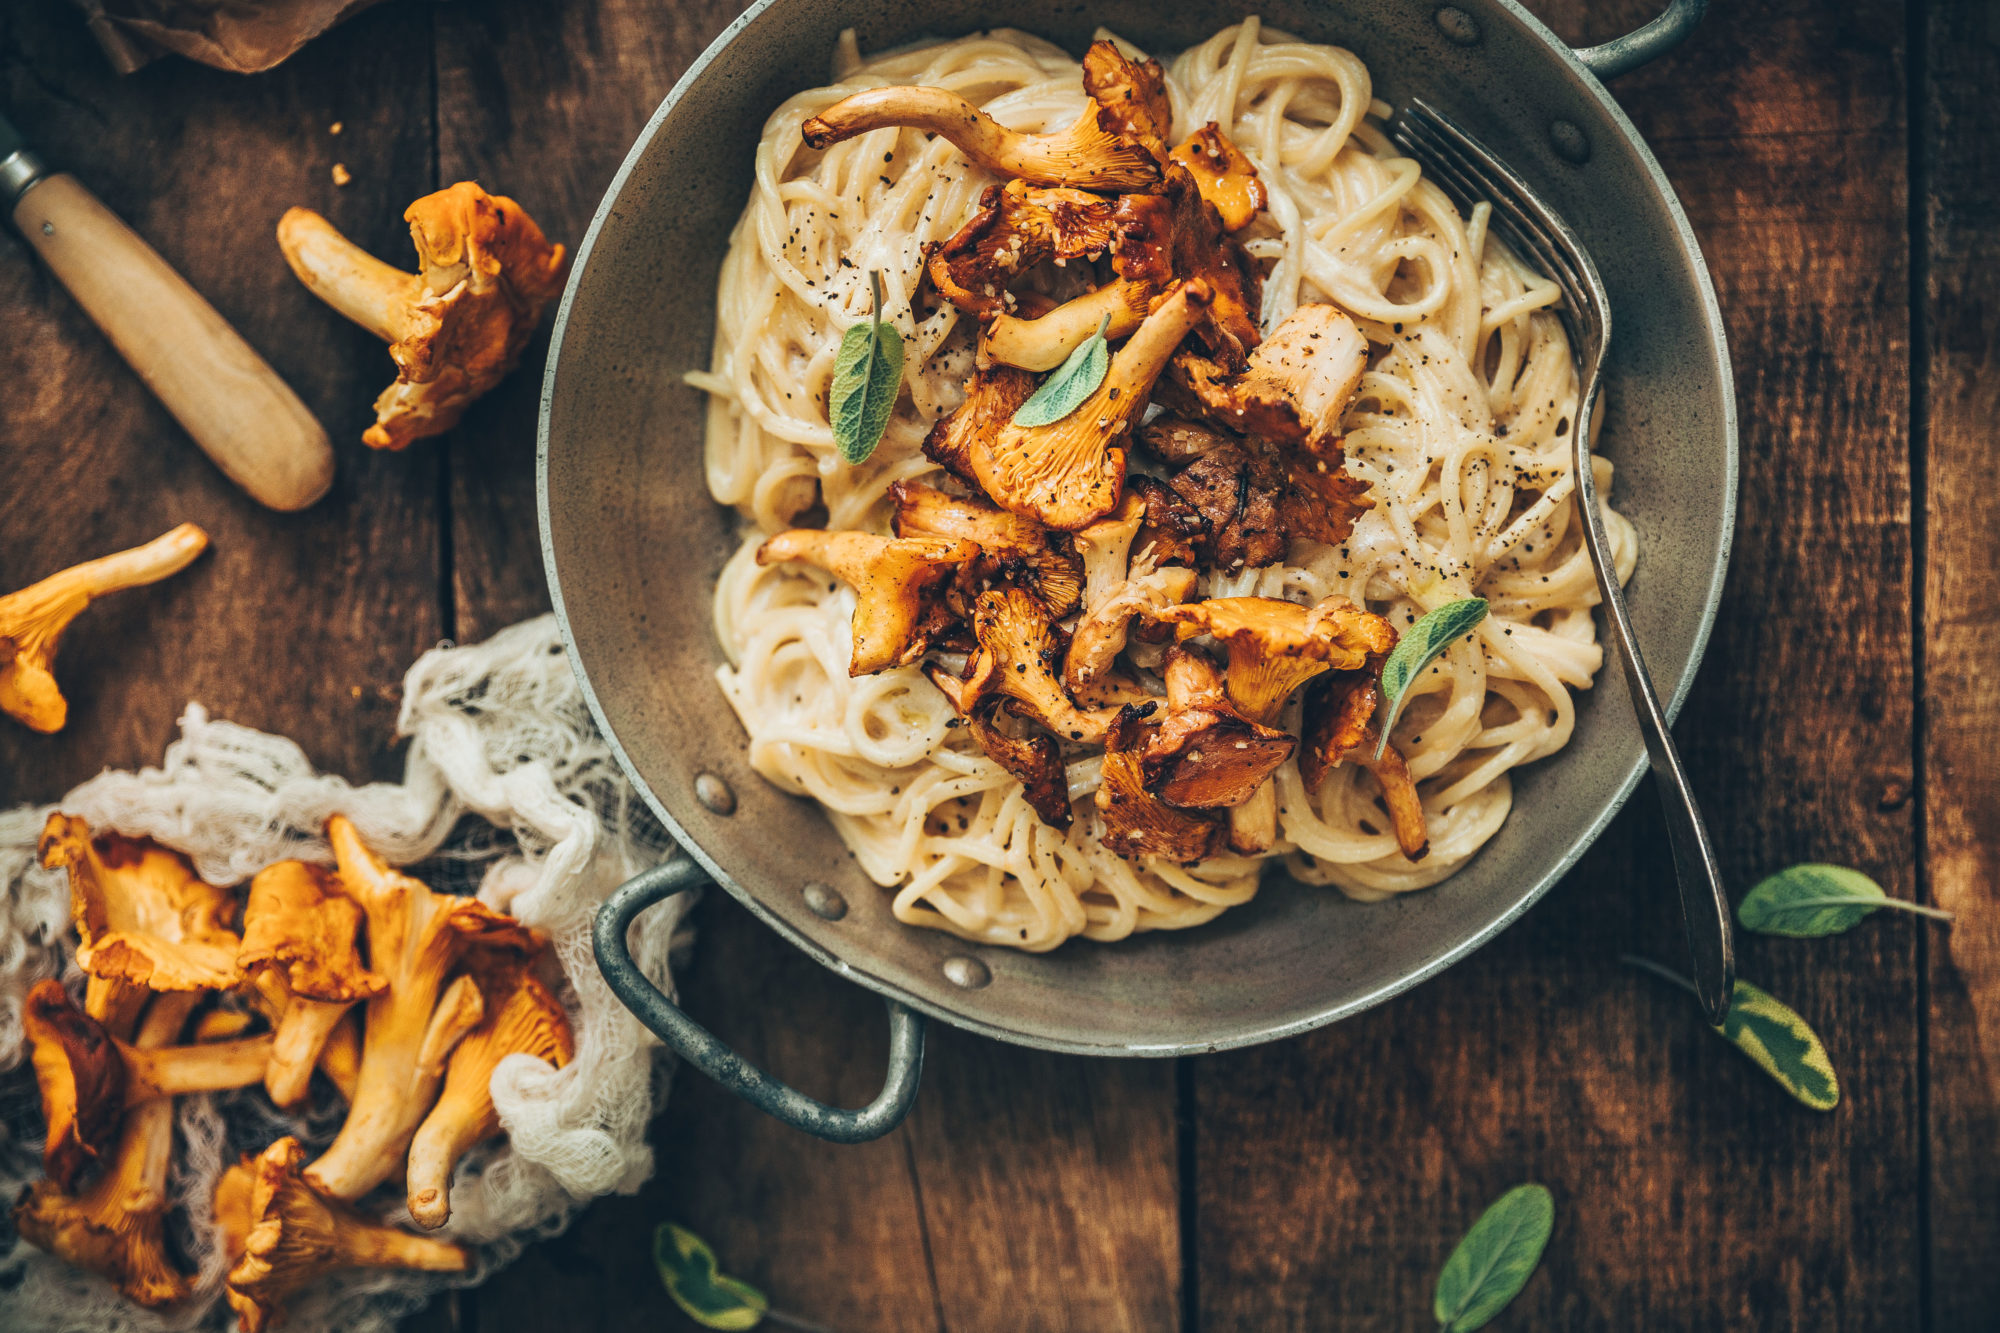 Spaghettis aux girolles sauce 3 fromages